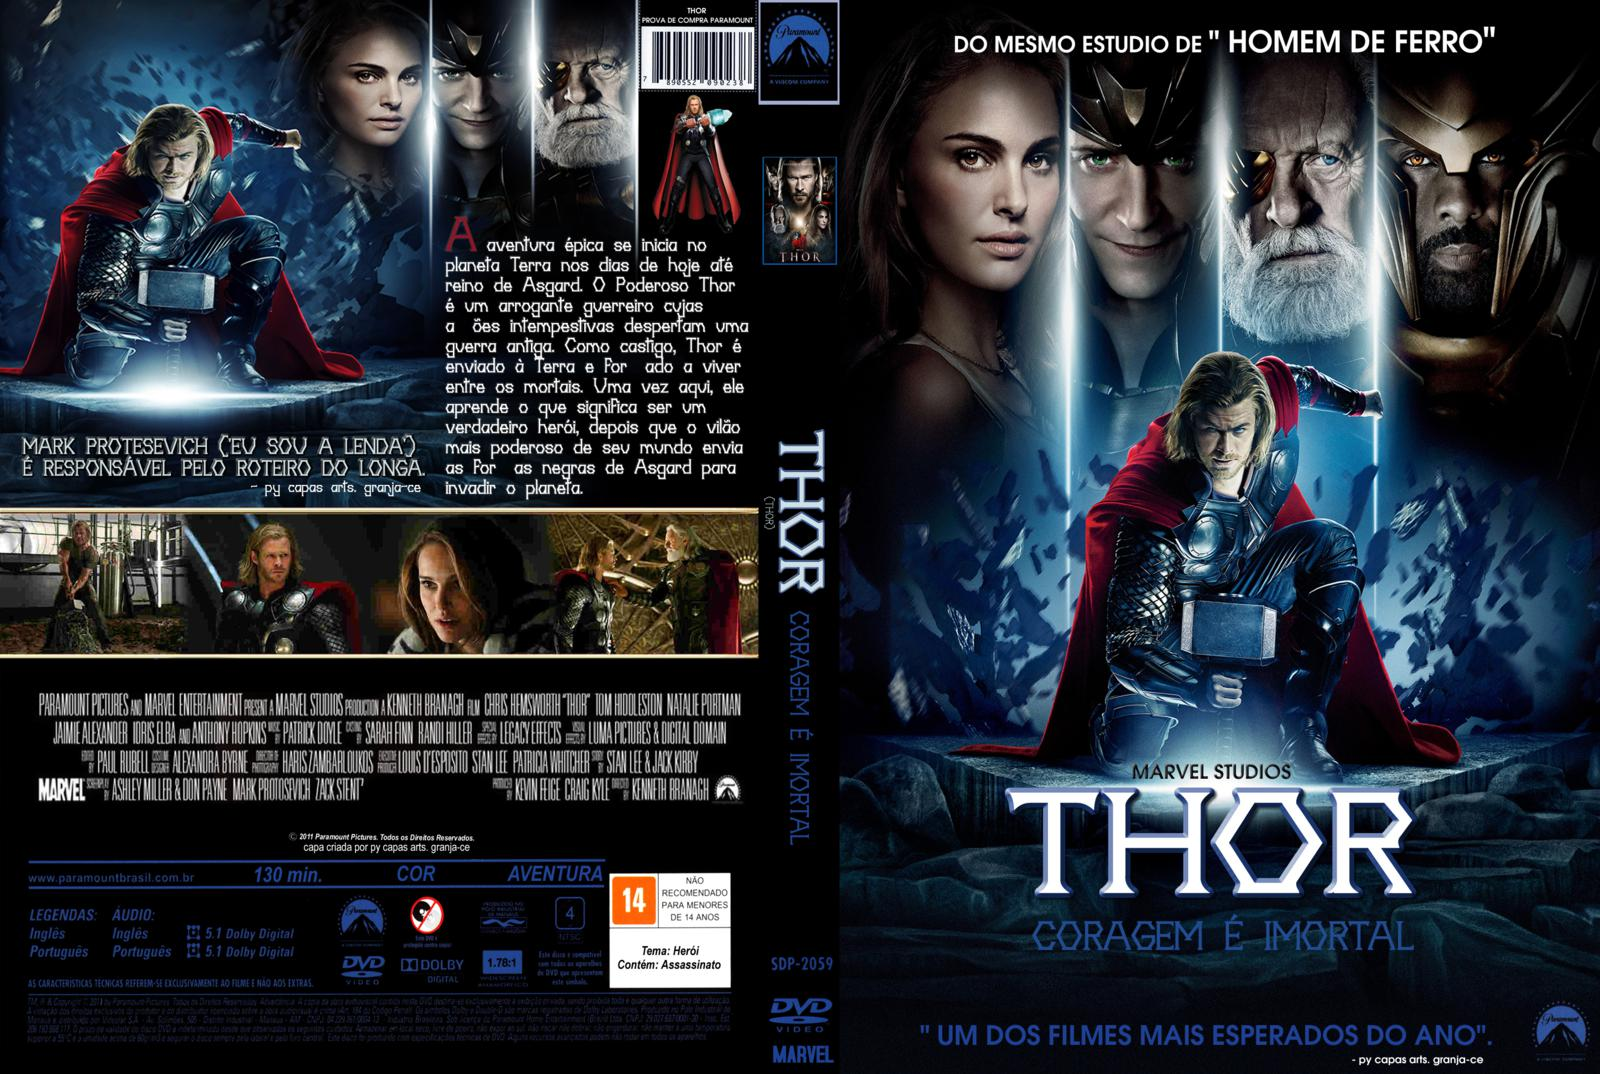 capa filme dvd thor gamecover capas customizadas para. Black Bedroom Furniture Sets. Home Design Ideas